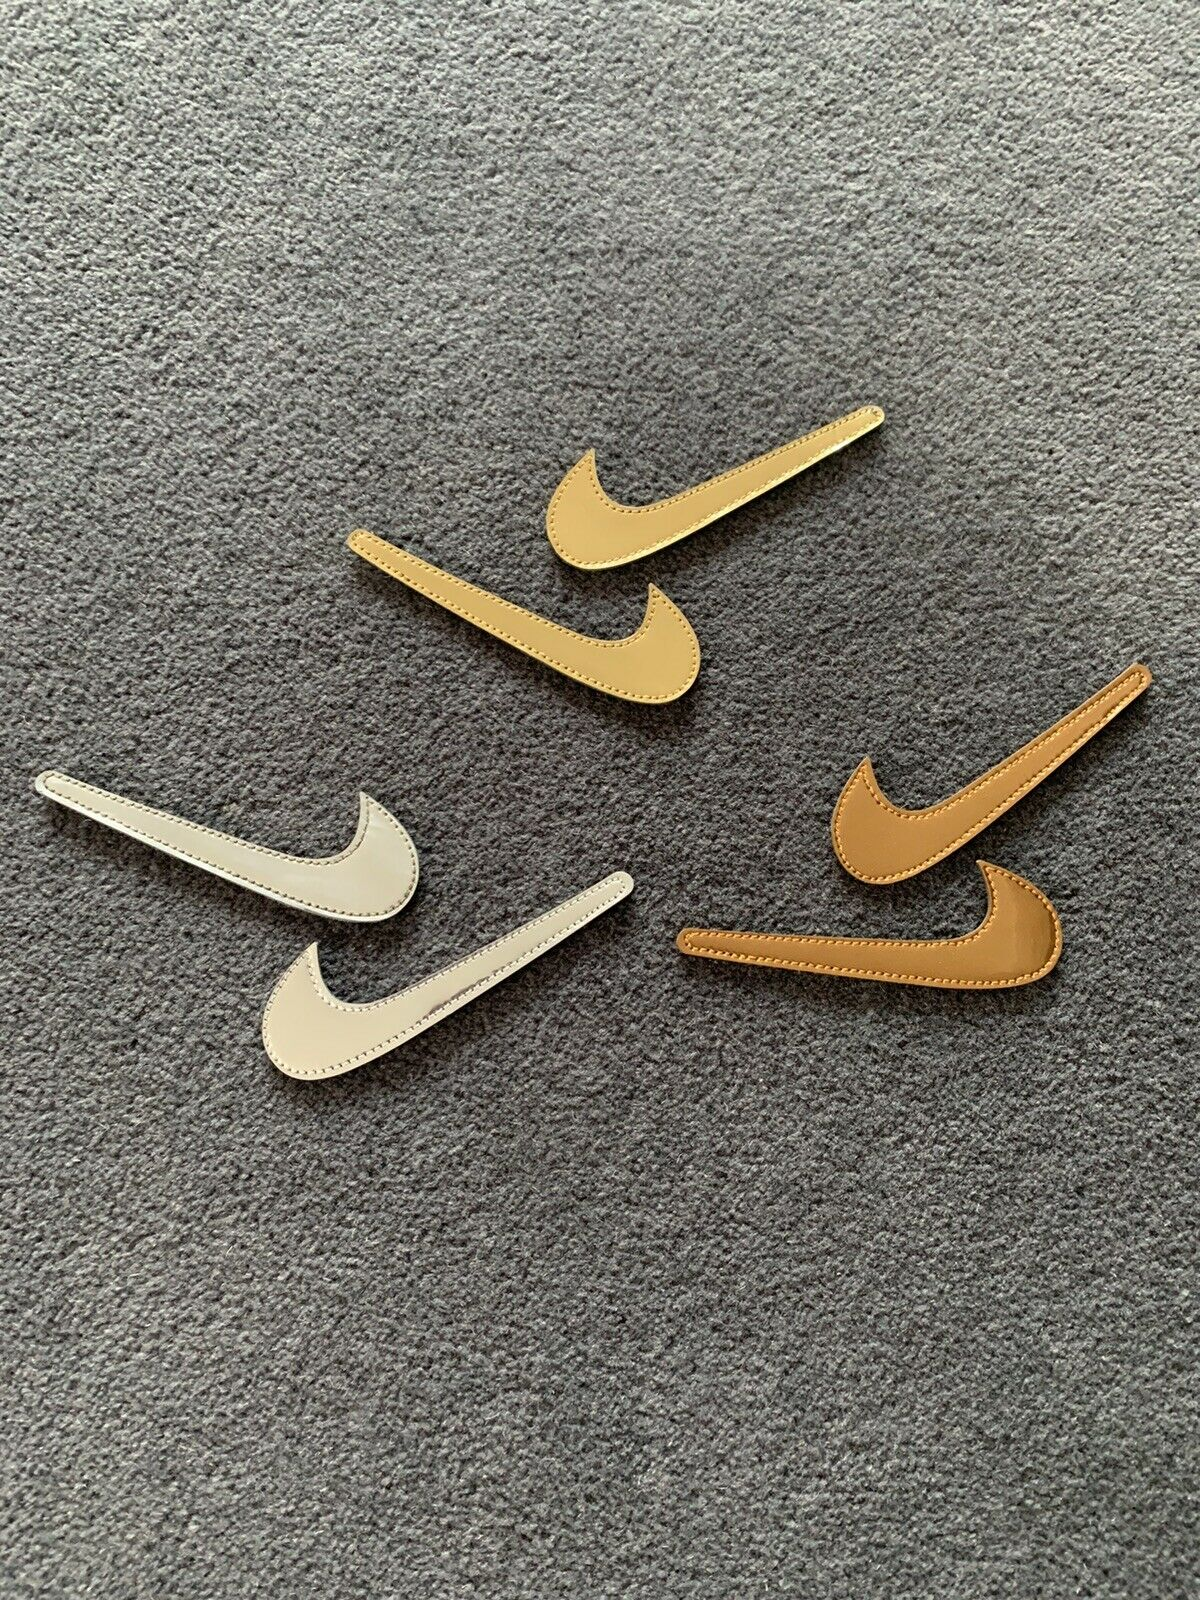 RARE Nike Air Force 1 Interchangeable Swooshes/Swoosh Gold silver Bronze